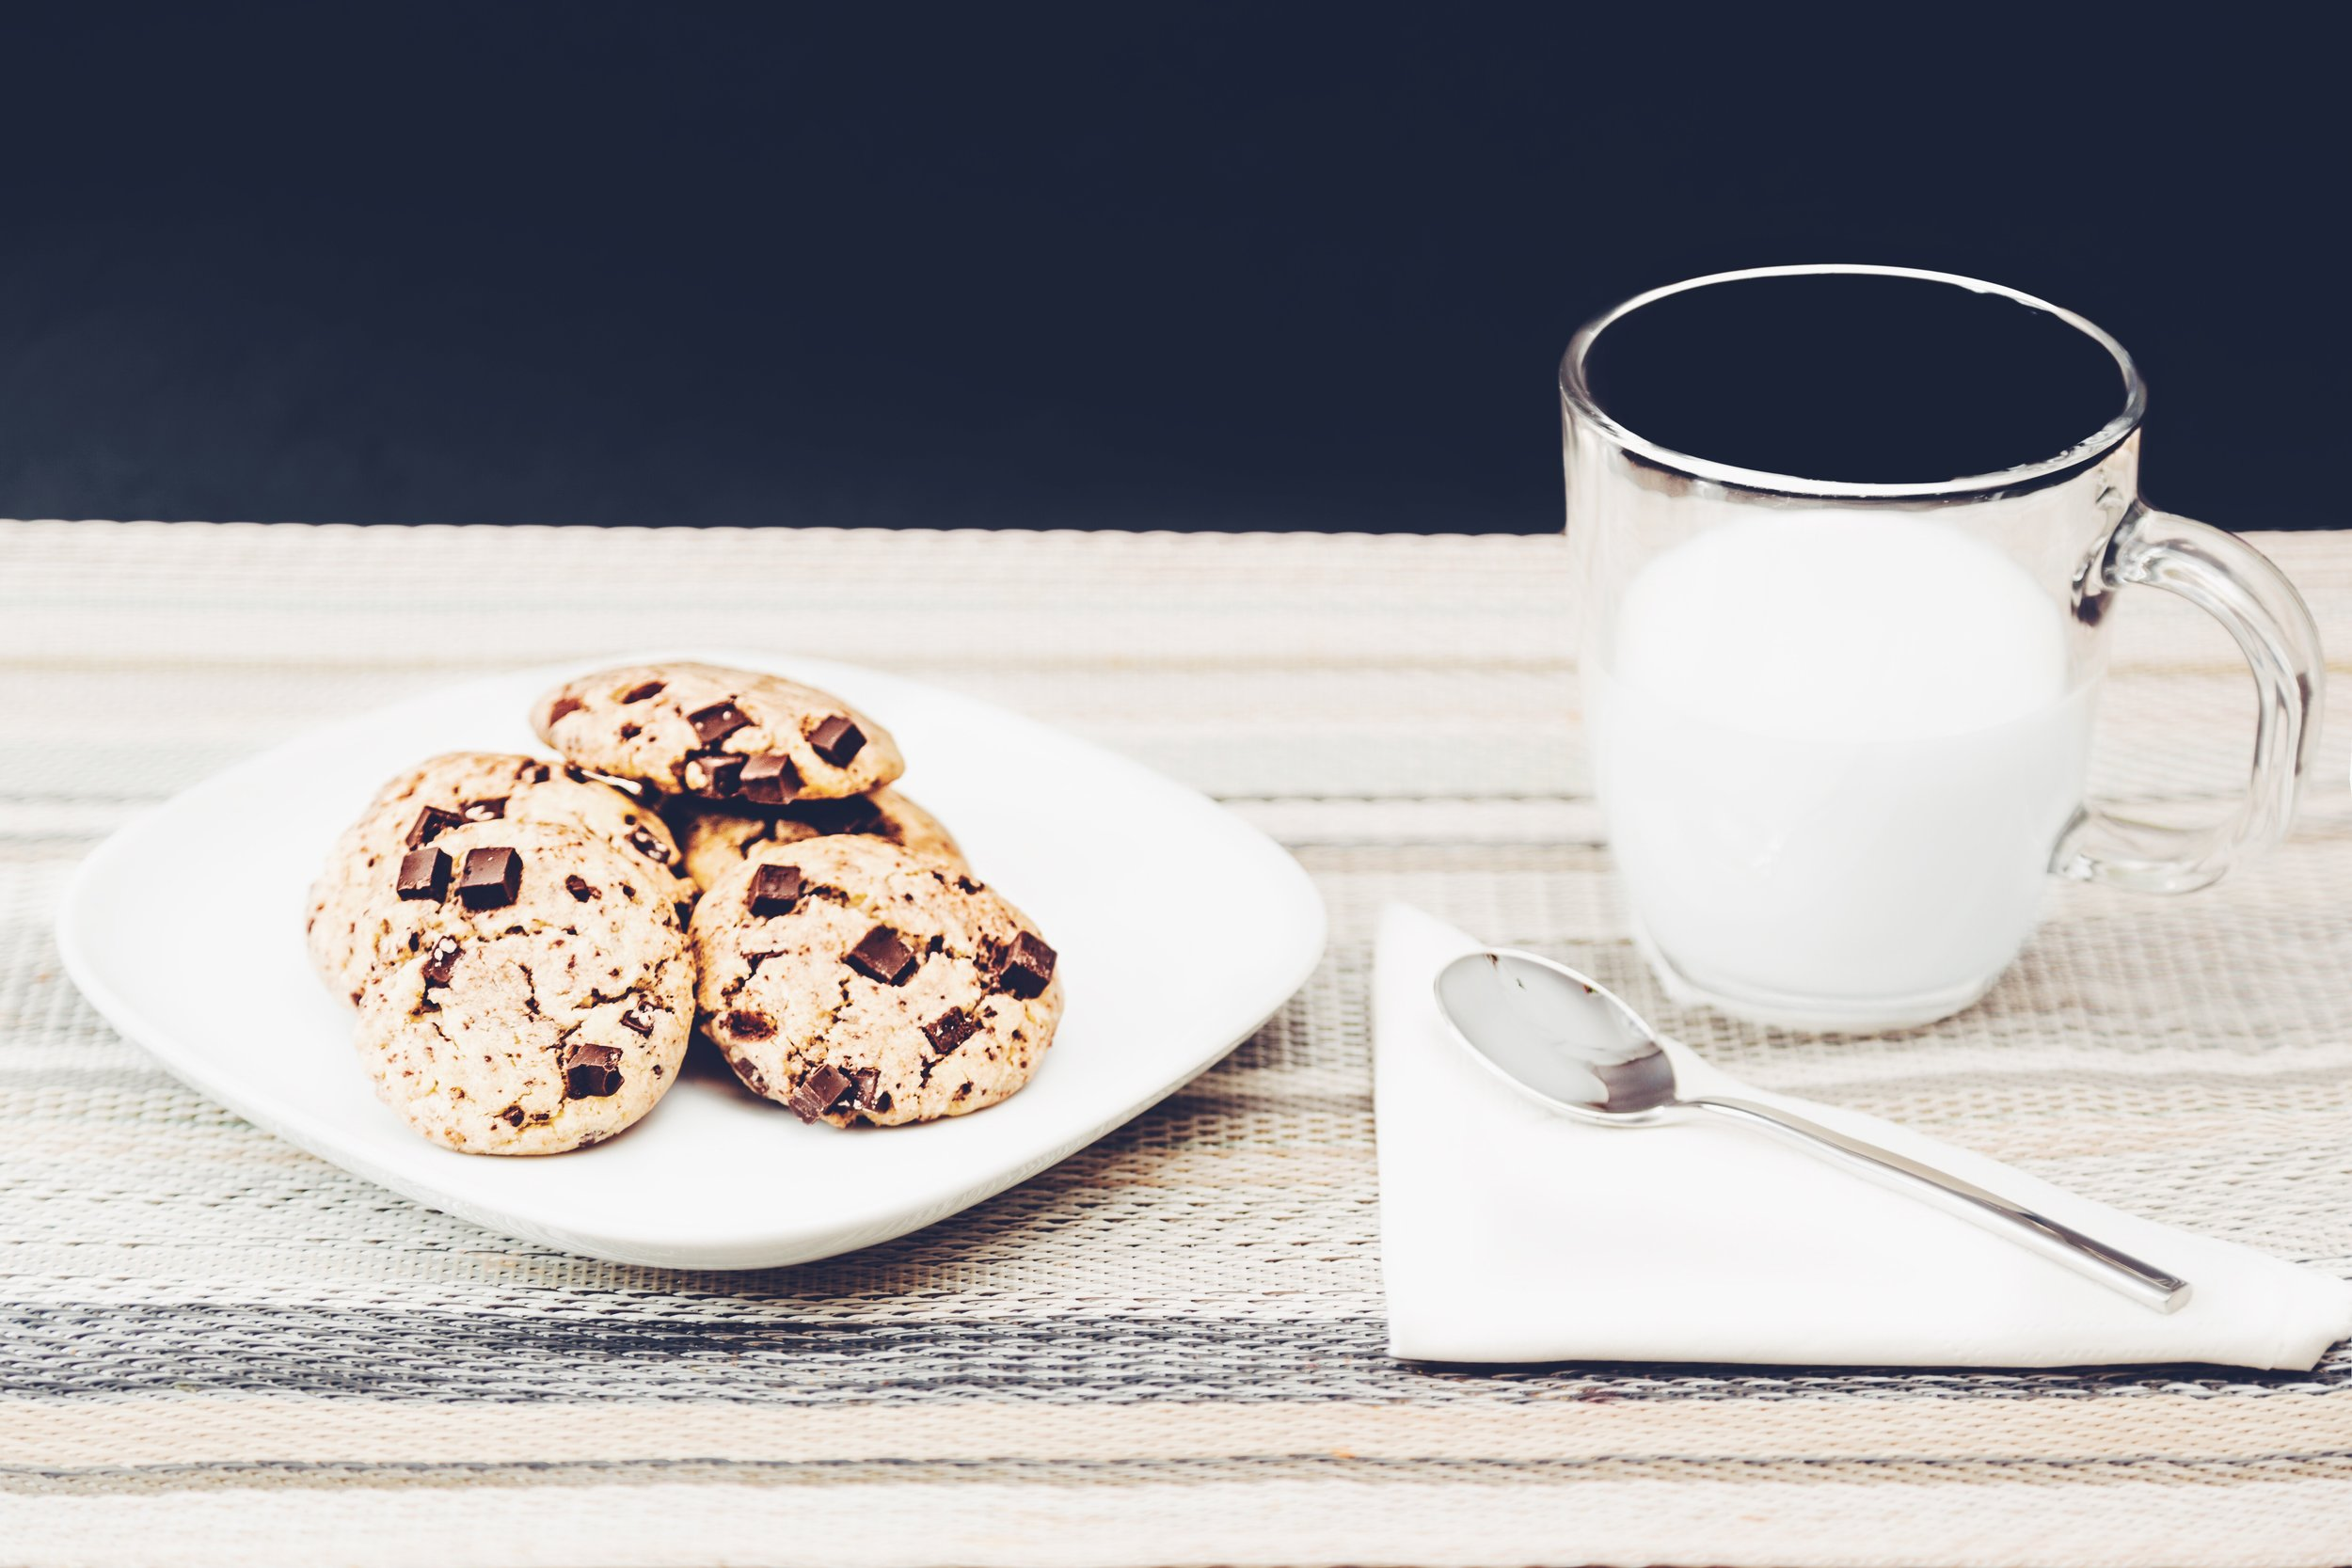 breakfast-chocolate-cookies-890575.jpg